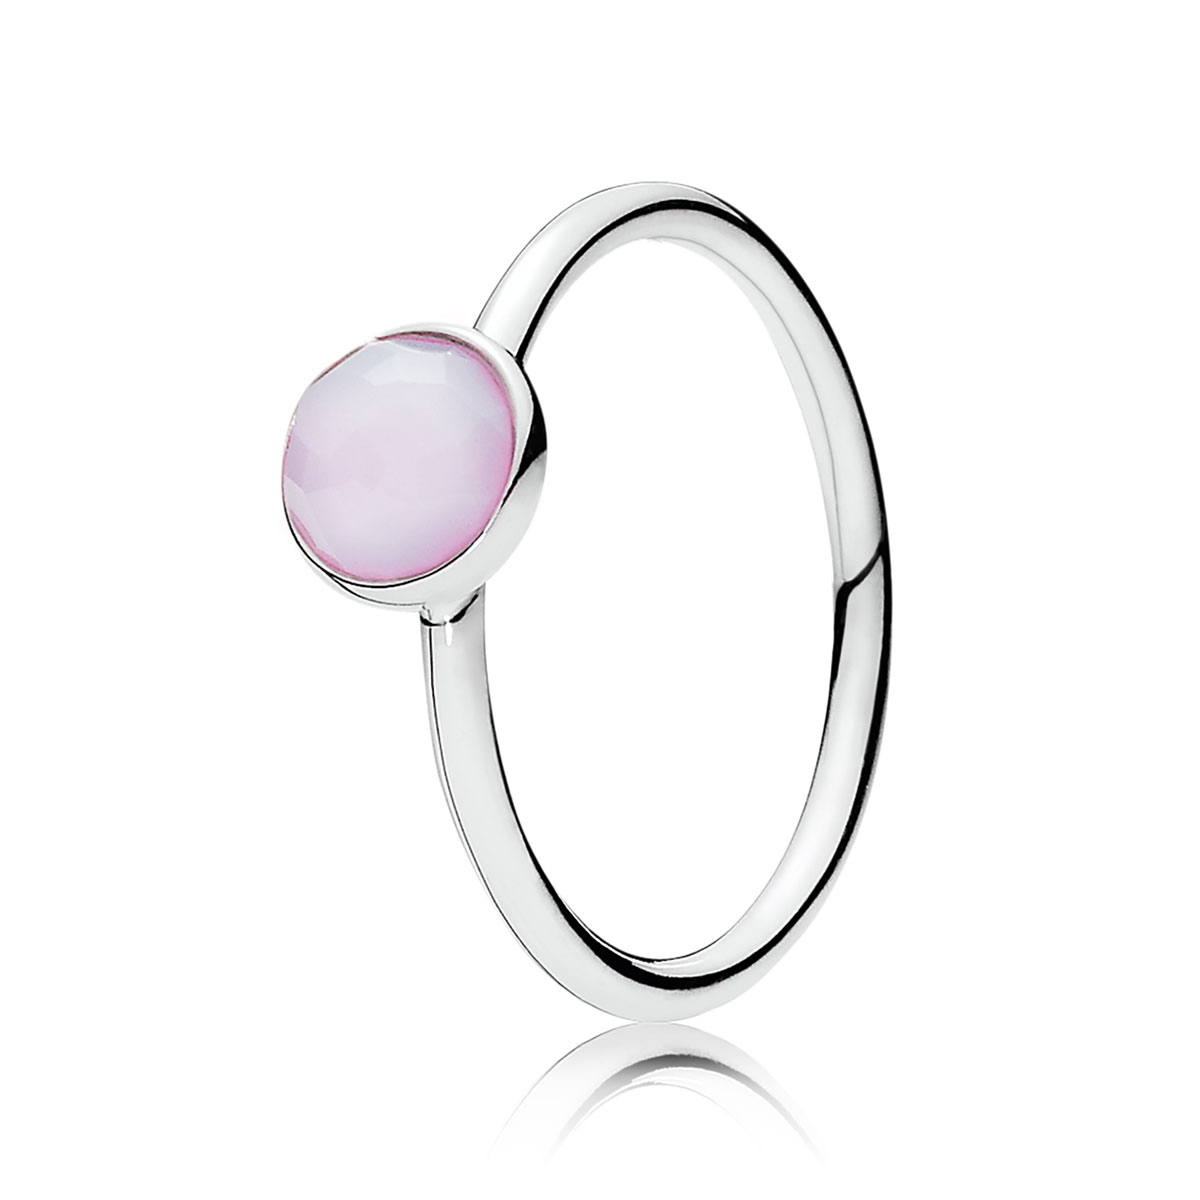 ecce6b62e October Droplet with Opalescent Pink Crystal Ring PANDORA -  Pancharmbracelets.com